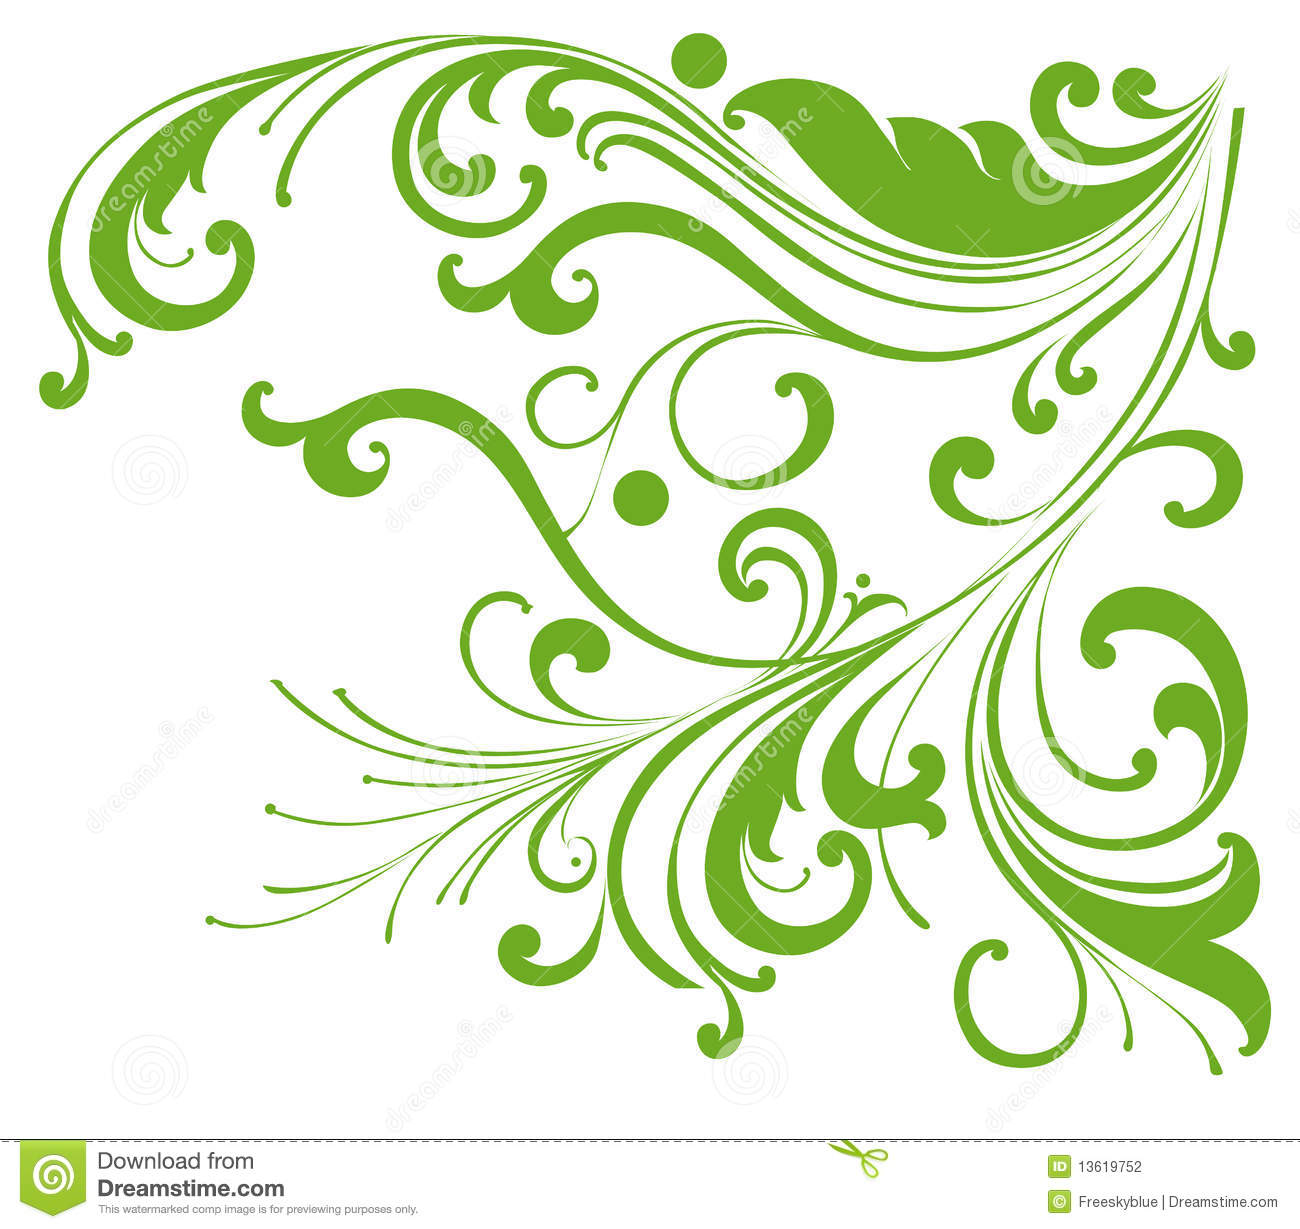 Green vines pattern stock illustration. Illustration of ...